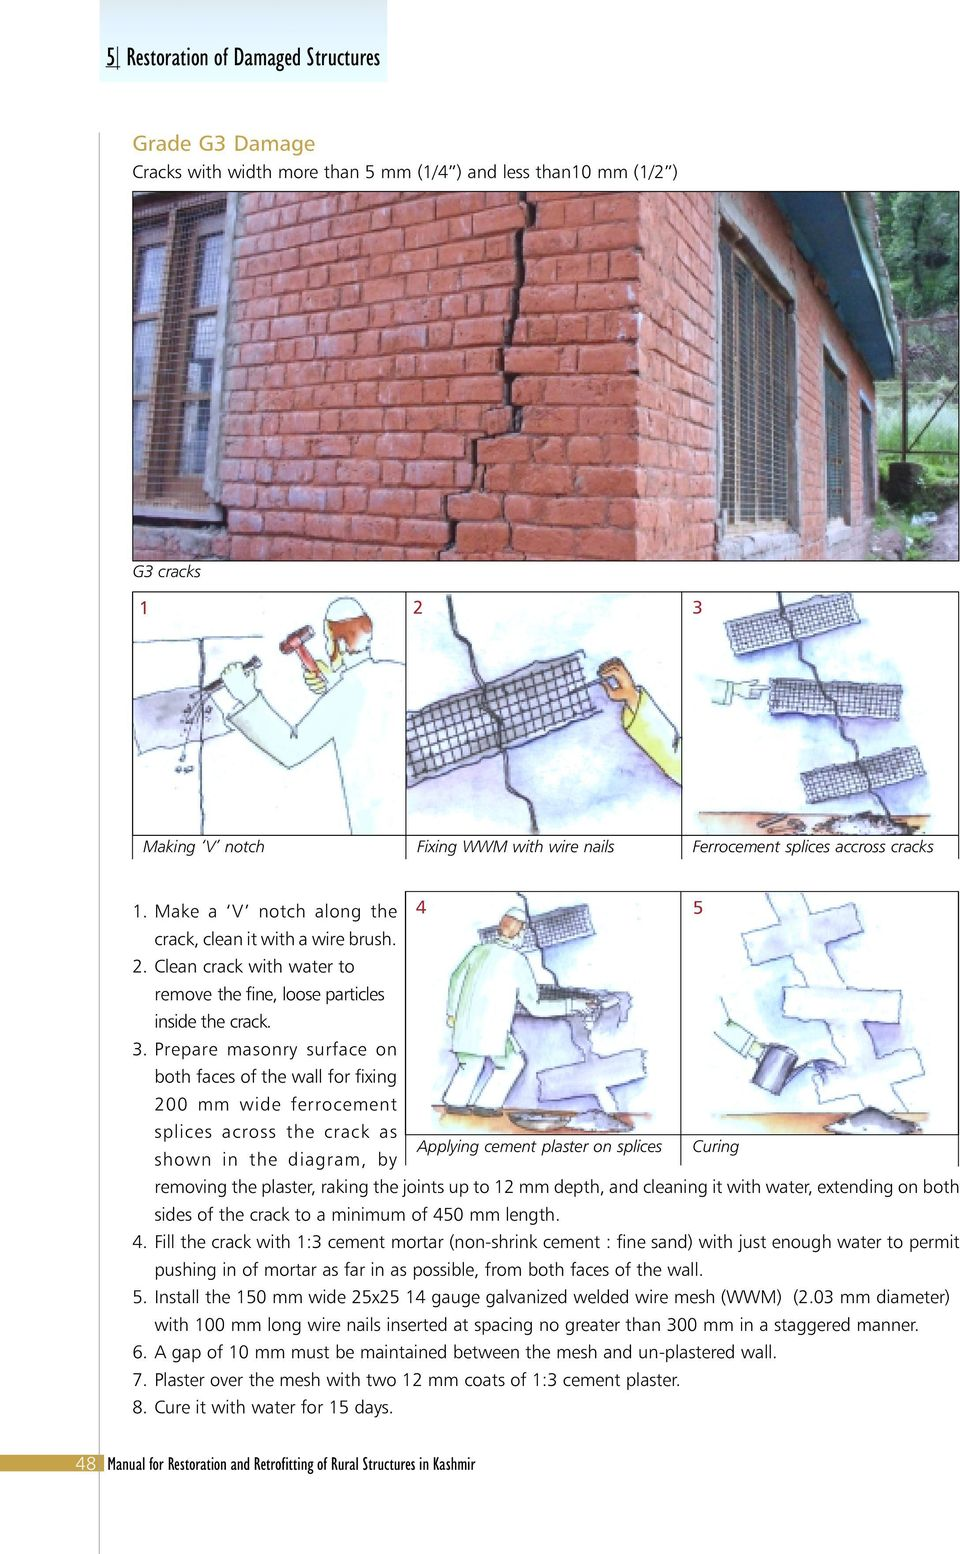 Prepare masonry surface on both faces of the wall for fixing 200 mm wide ferrocement splices across the crack as shown in the diagram, by Applying cement plaster on splices Curing removing the